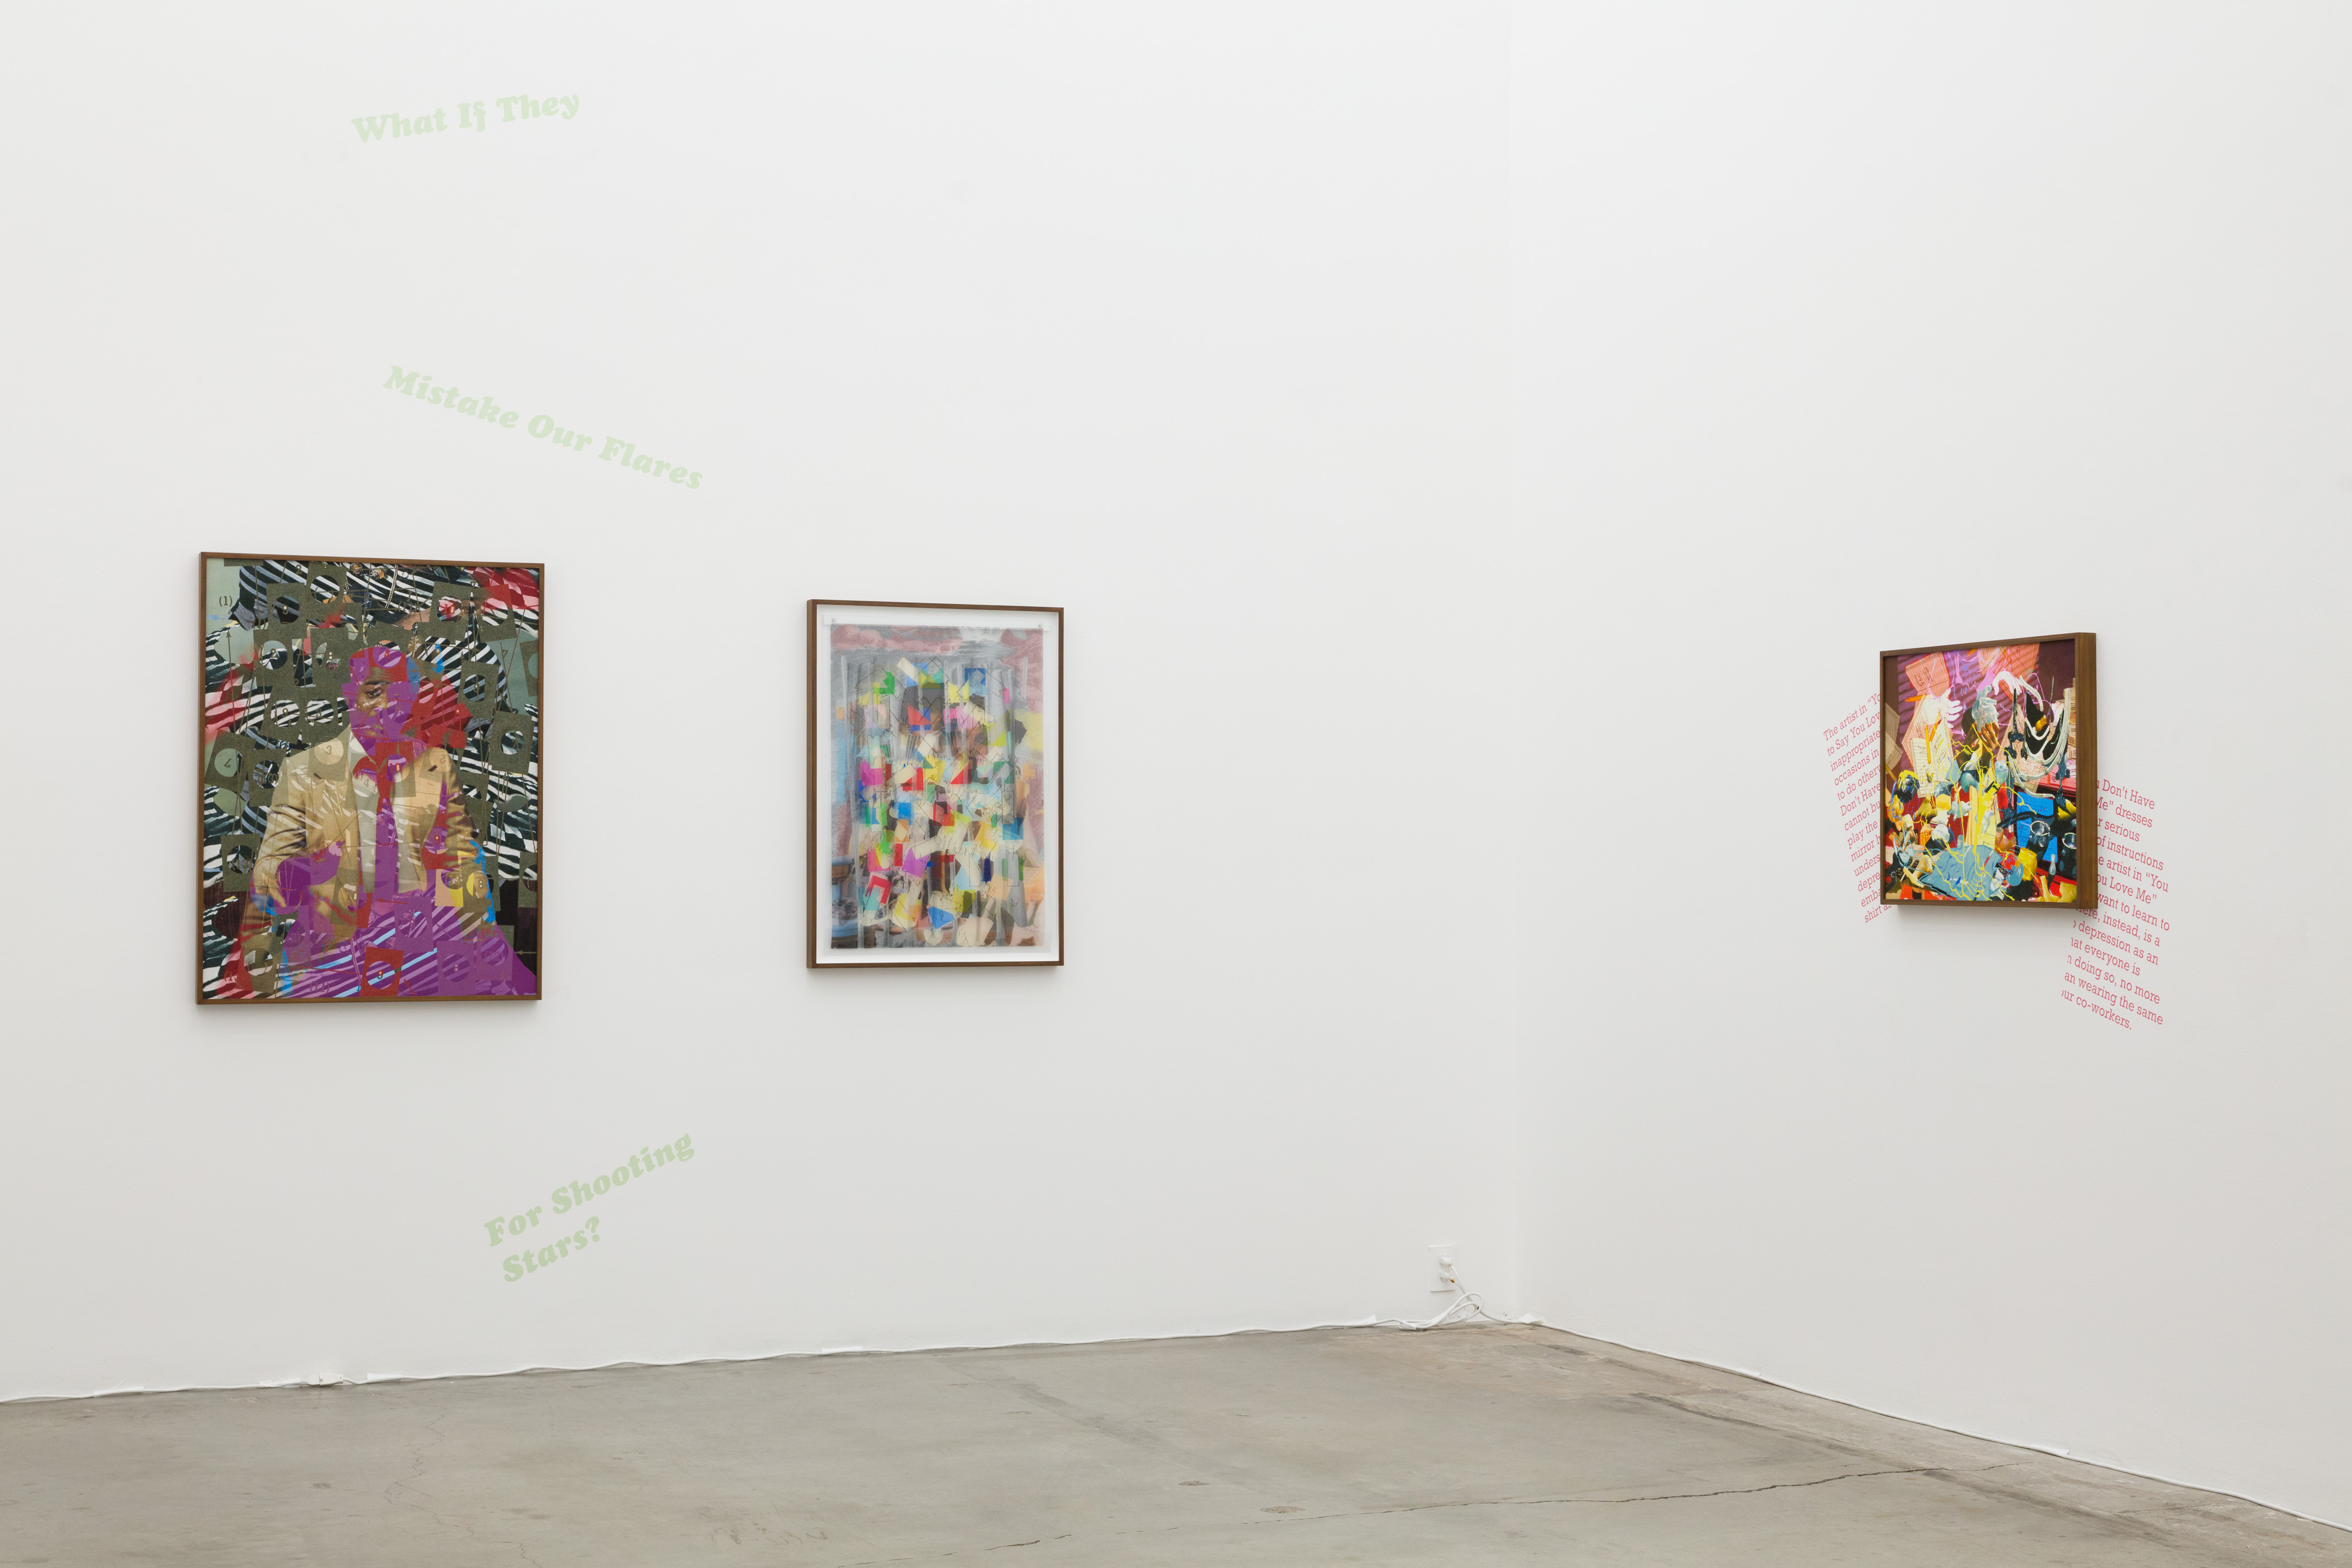 Installation view, Jibade-Khalil Huffman: You Don't Have to Say You Love Me, Anat Ebgi, Los Angeles, CA, 2020. Photography by Michael Underwood.